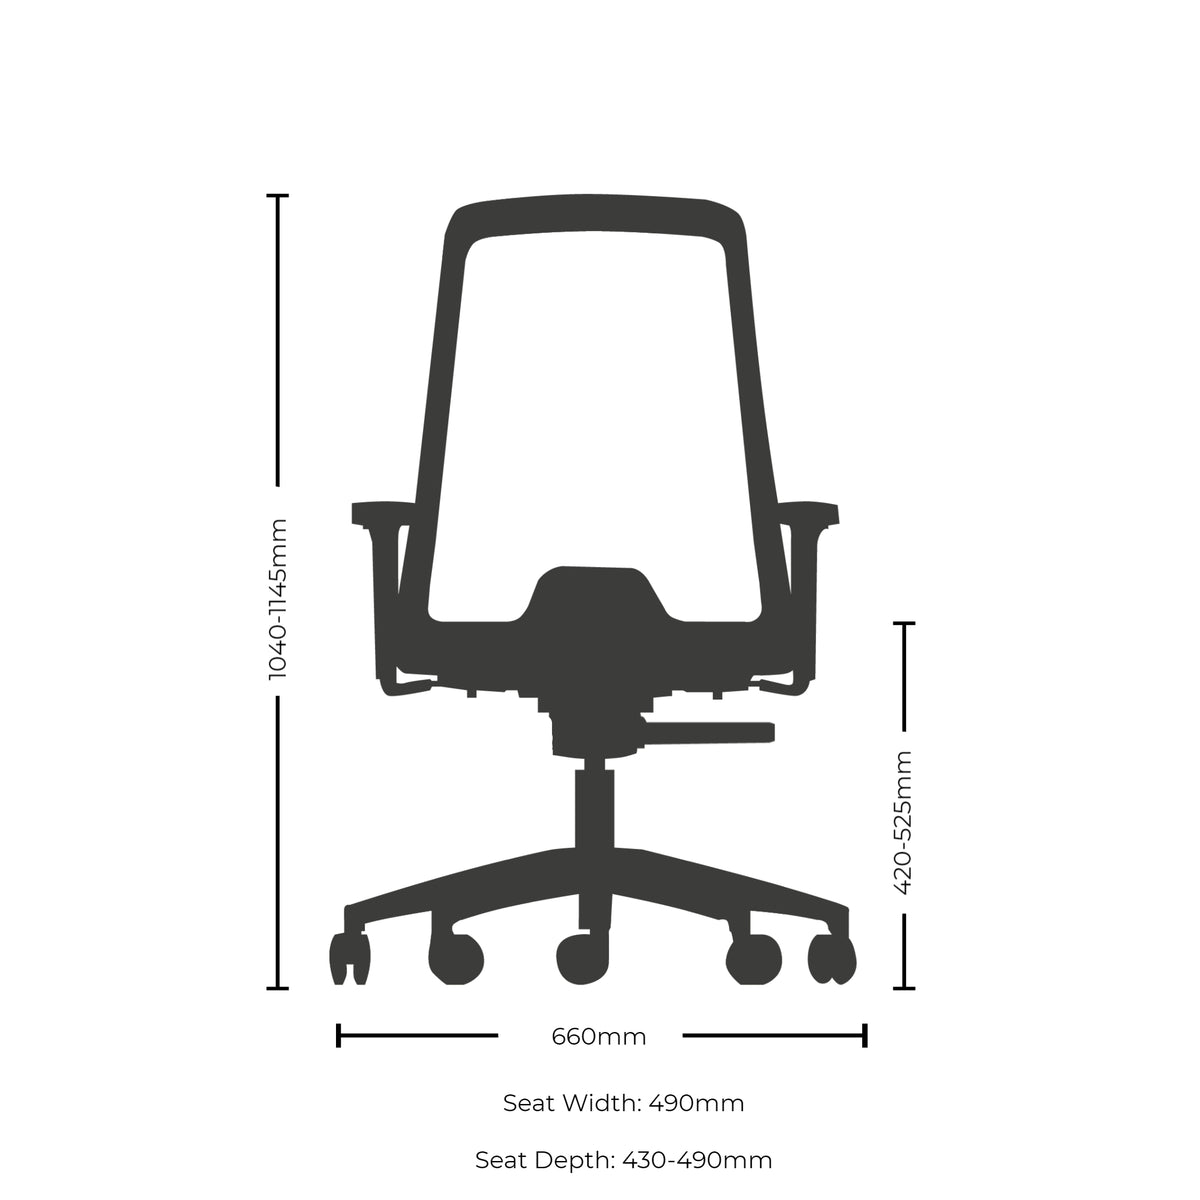 Dimensions for Interstuhl EVERYIS1 Office Task Chair 172E